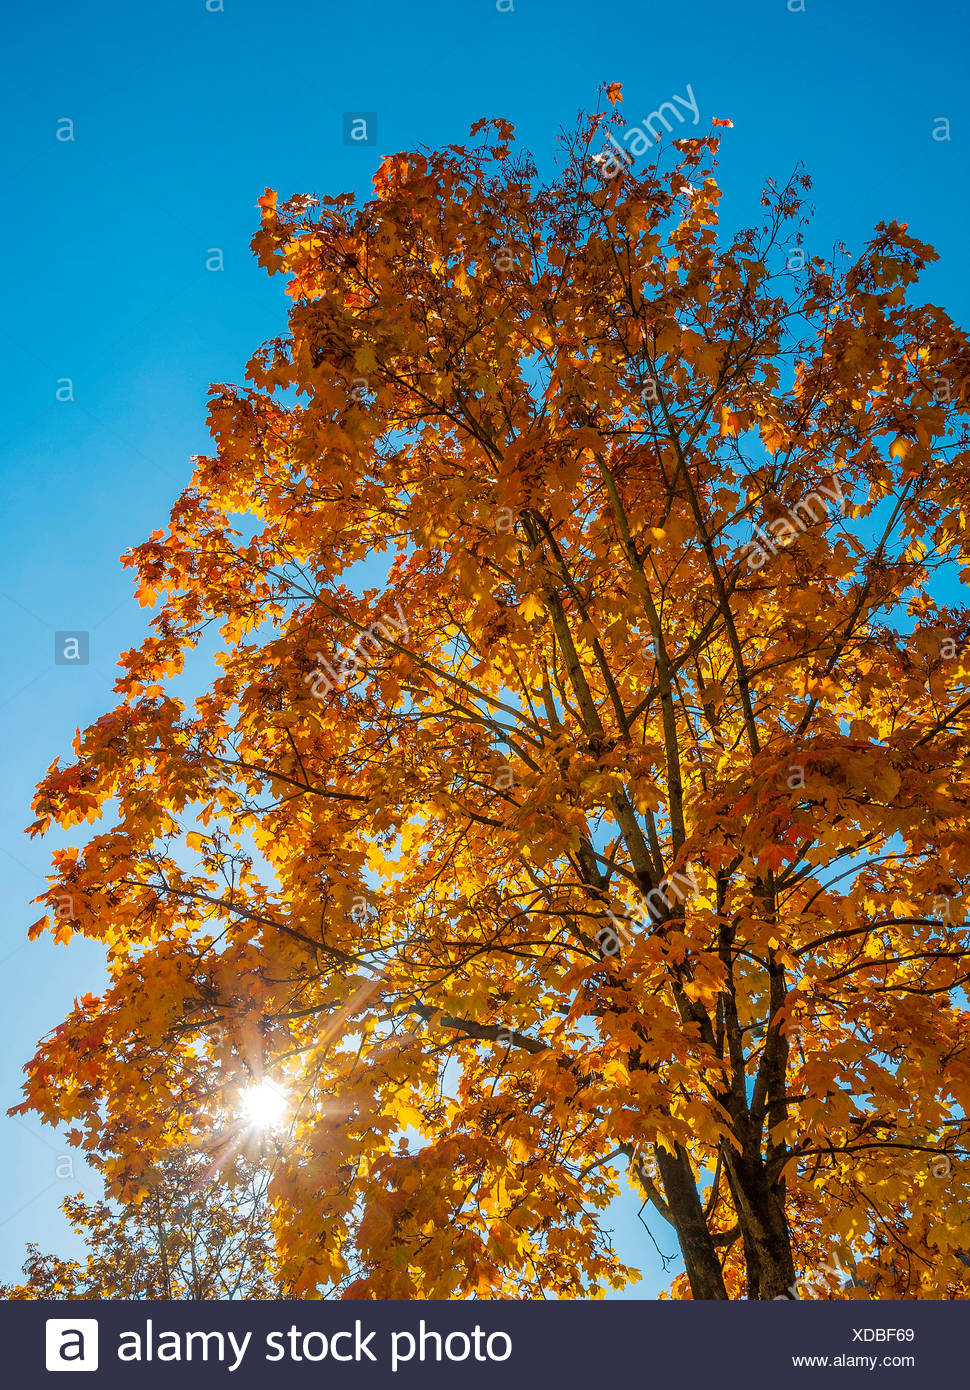 Autumn sun shining through yellow leaves, maple tree (Acer), Bavaria, Germany - Stock Image